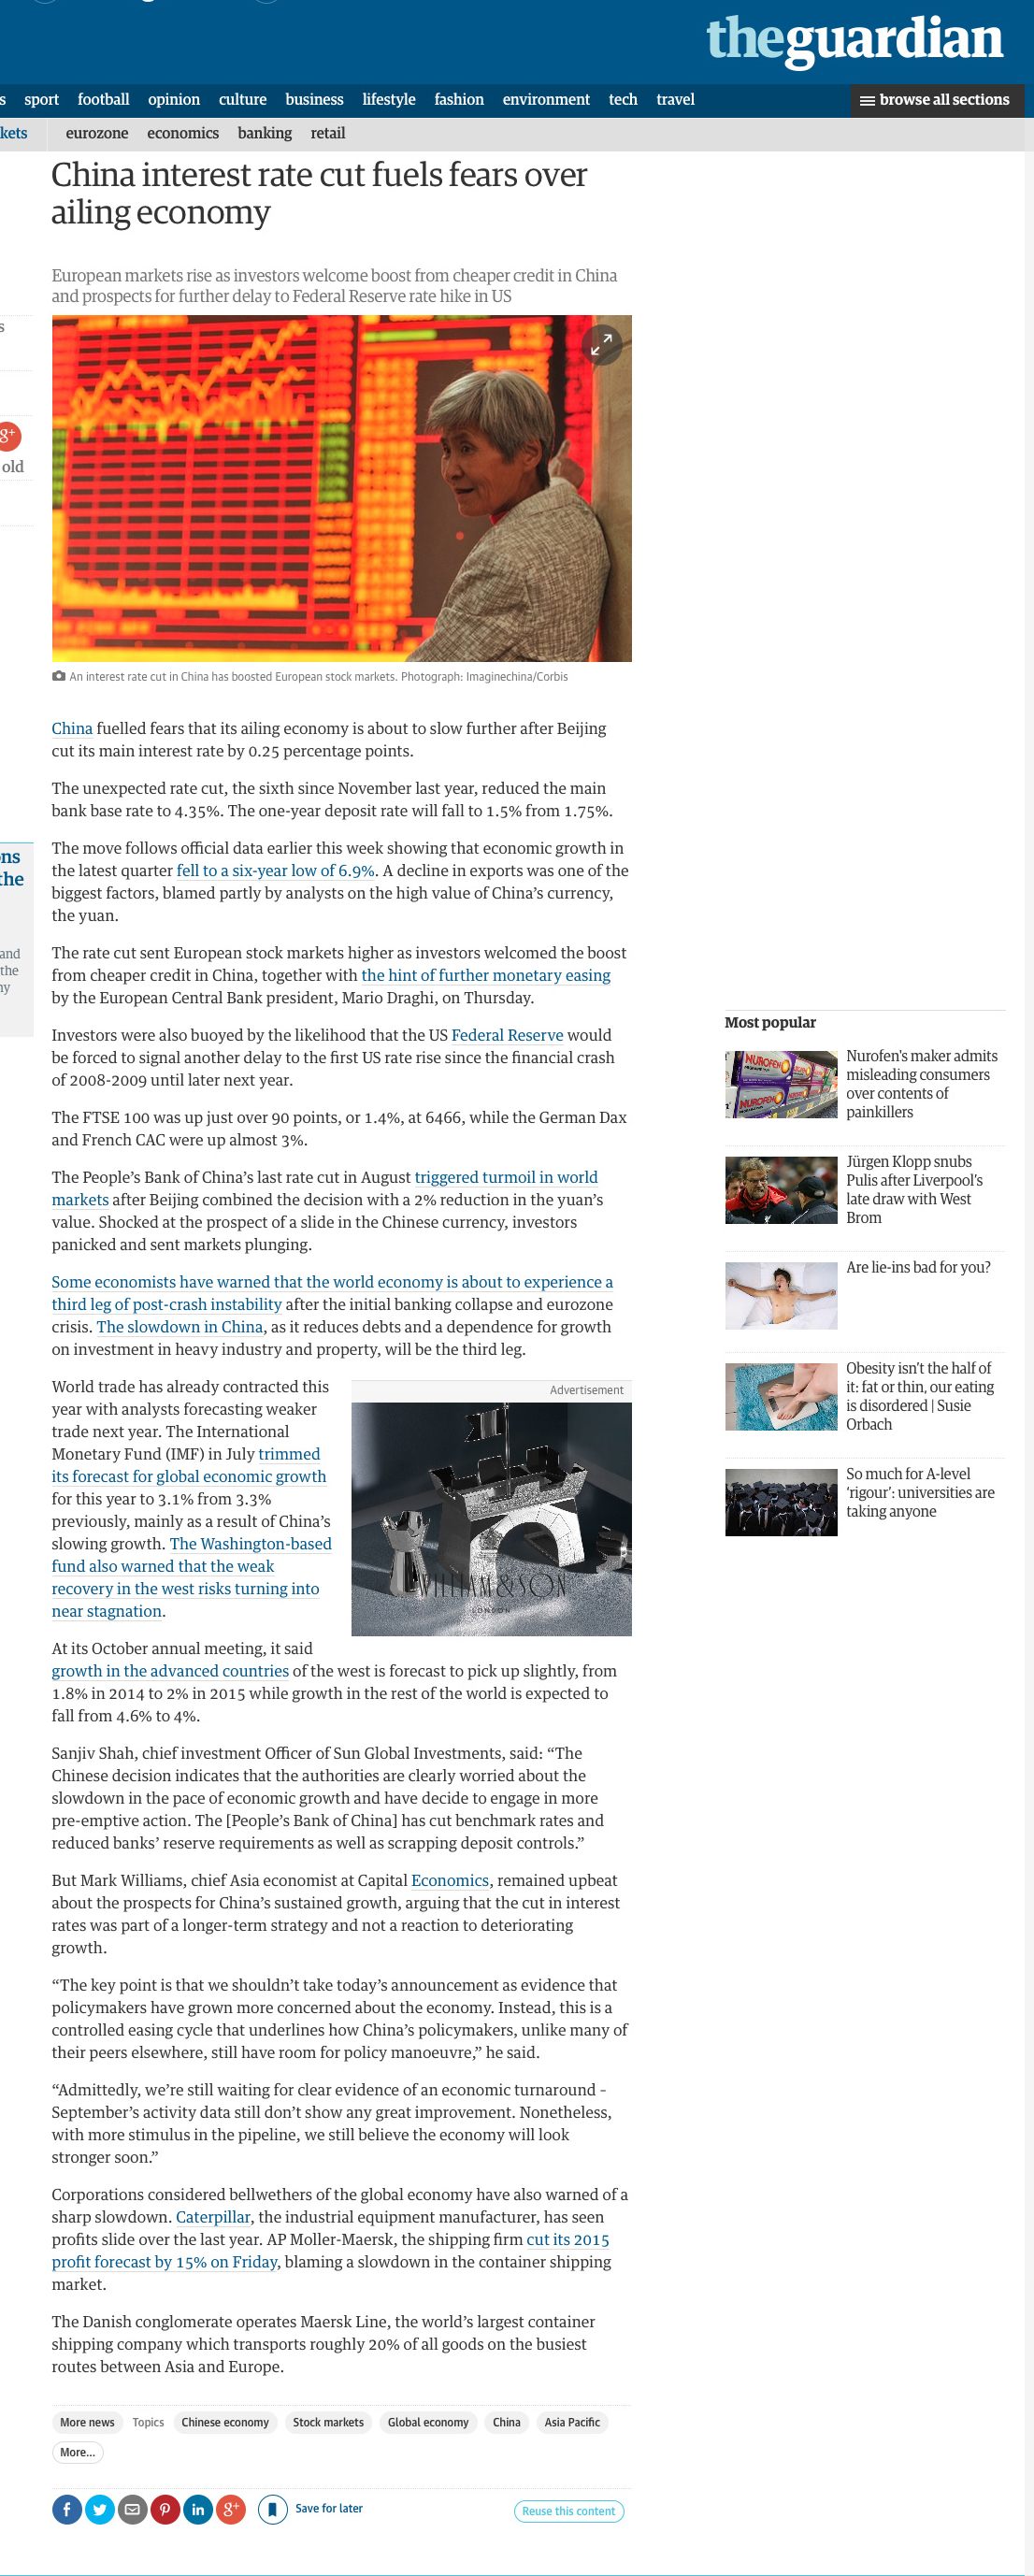 screenshot-www-theguardian-com-2015-12-14-10-14-38